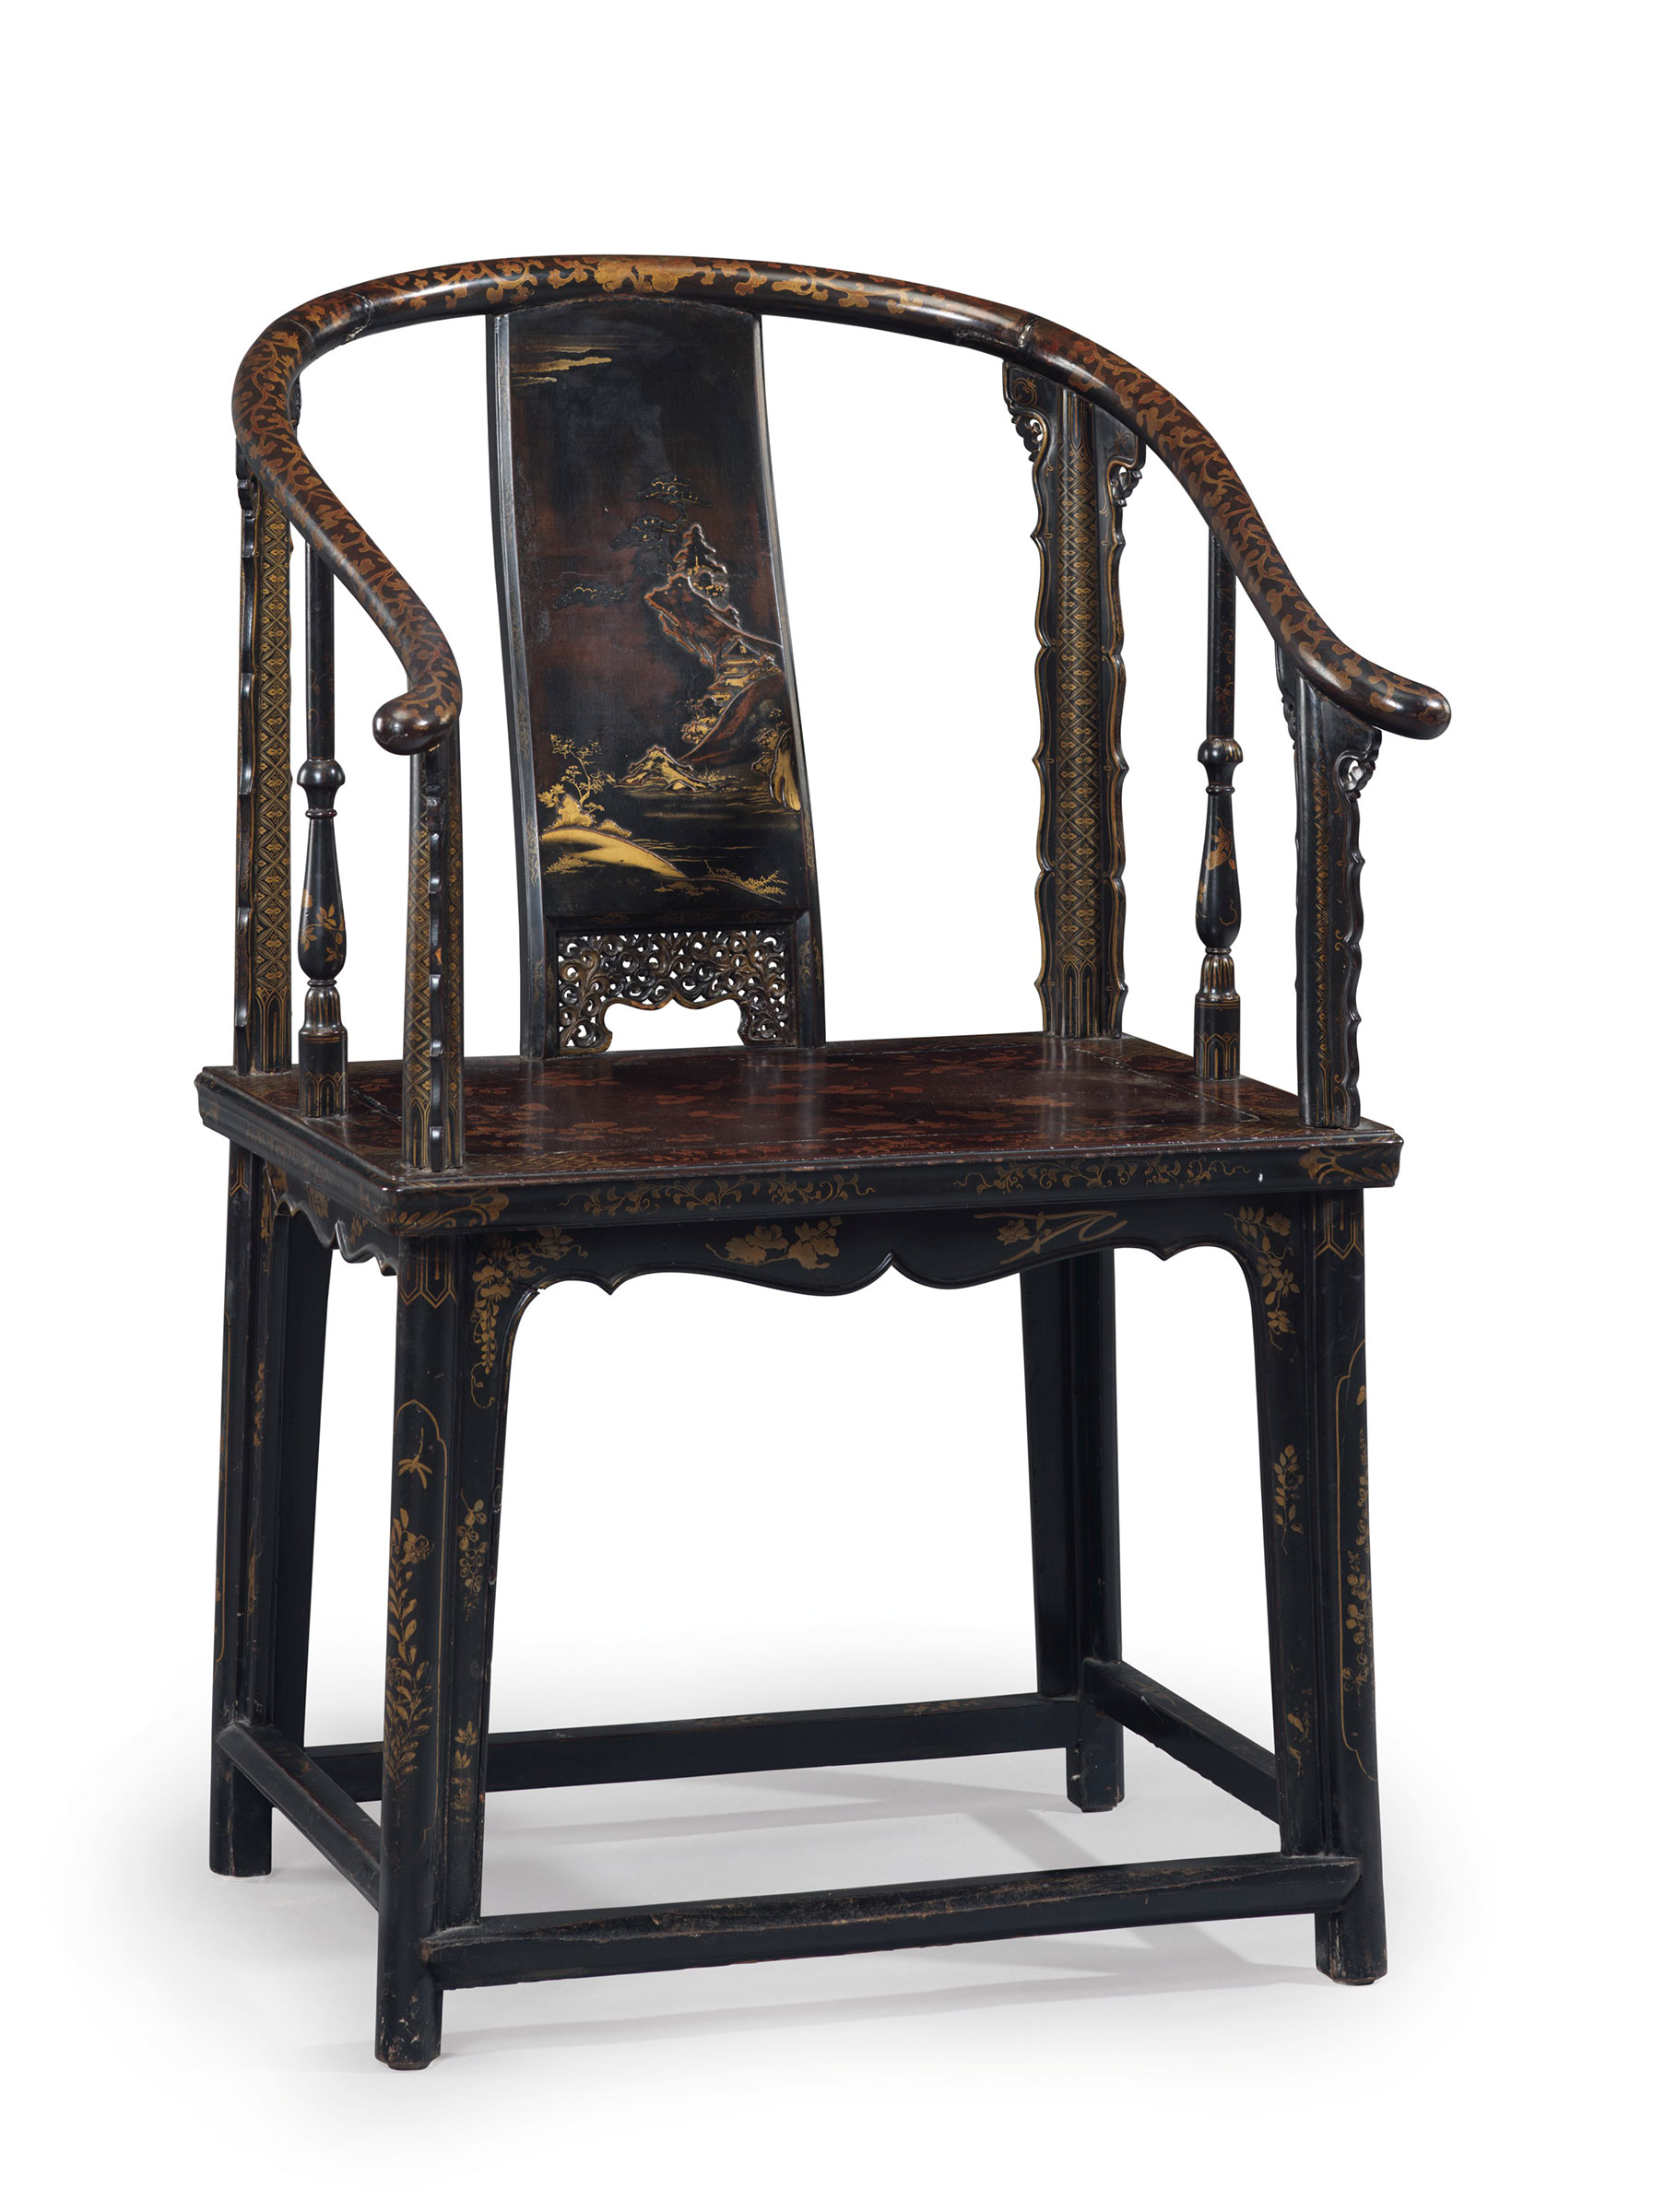 A Very Rare Lacquered Softwood Horseshoe Back Armchair, Quanyi, Late 17th  Century. 40½ In (102.8 Cm) High, 20½ In (52.1 Cm) Wide, 26½ In (67.3 Cm)  Deep.